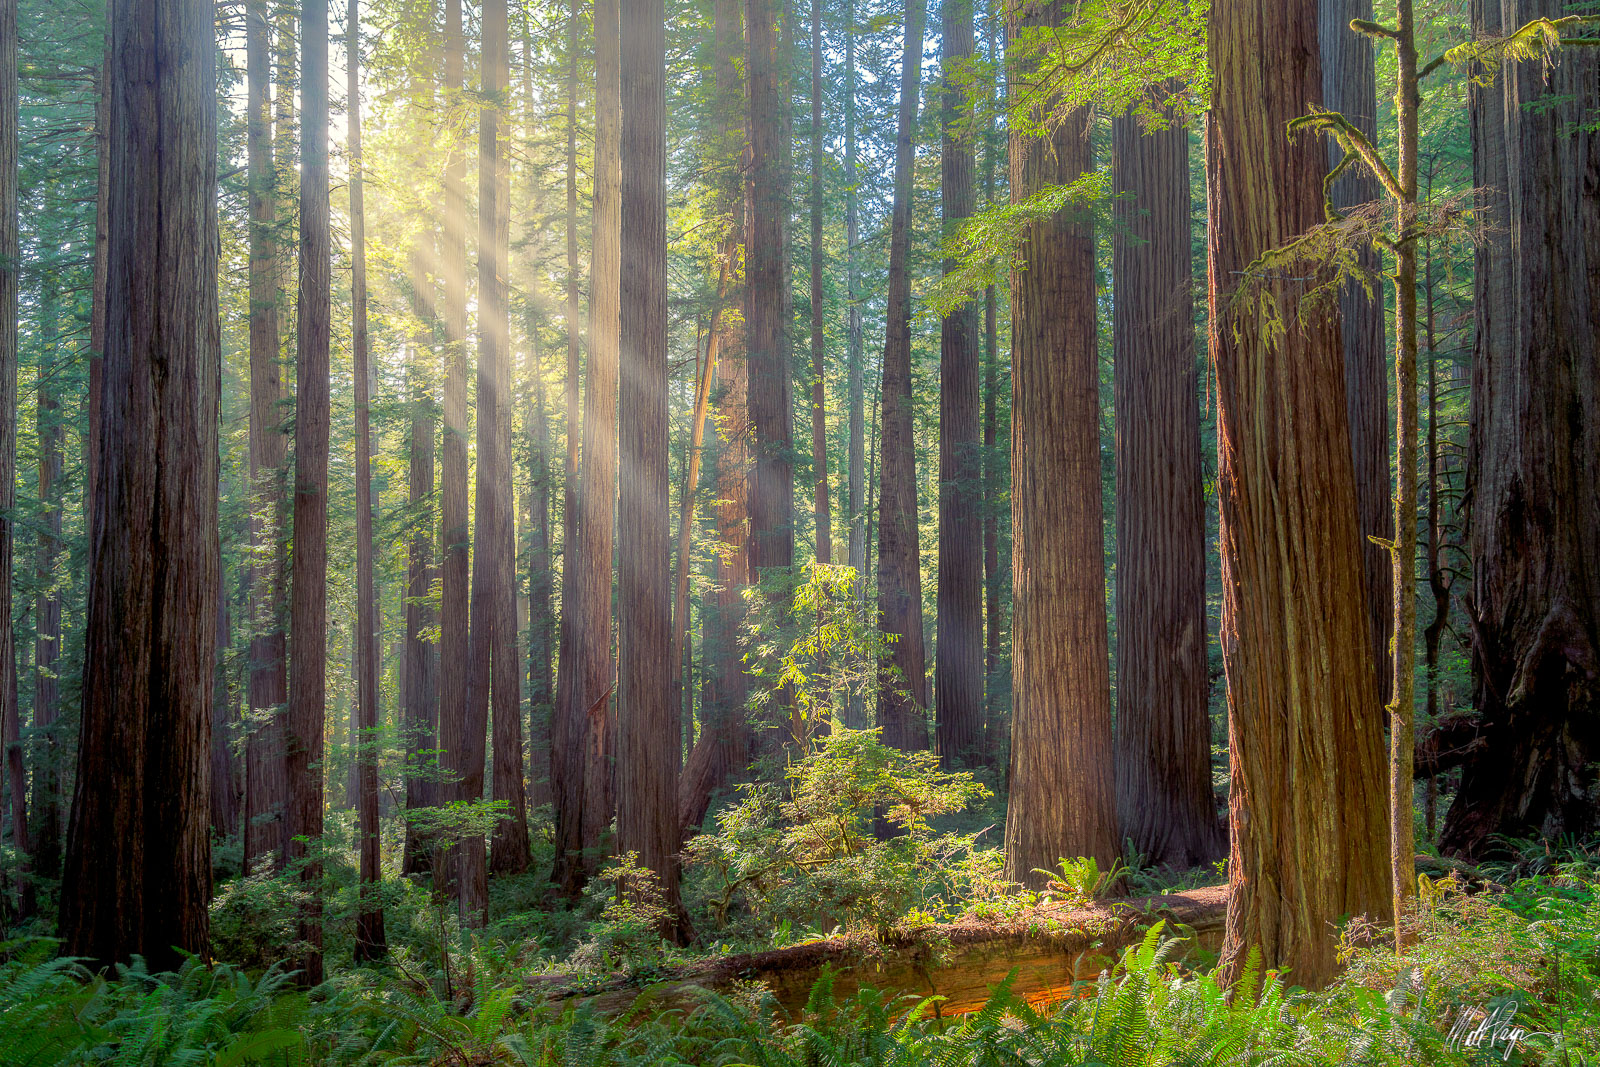 Afternoon light shines through the tall canopy of the Redwood forest in California.  Photo © copyright by Matt Payne.